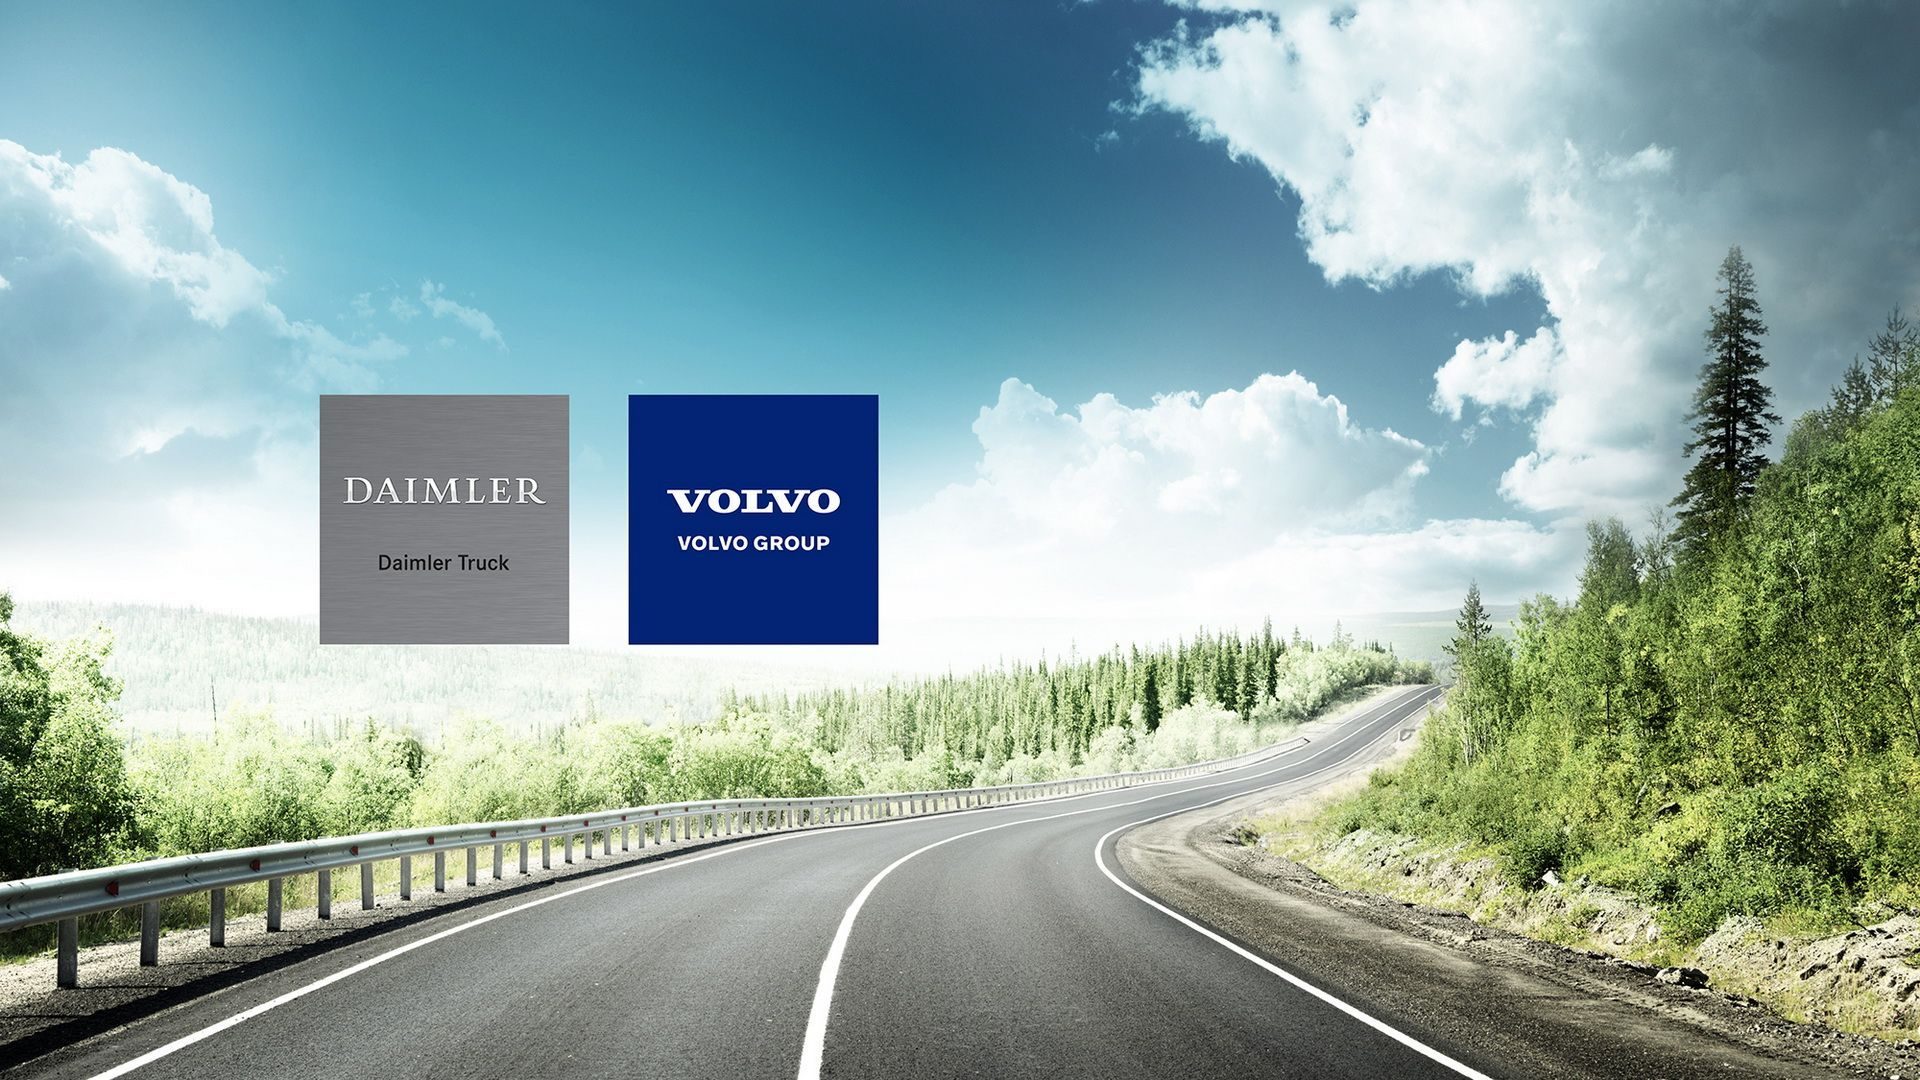 Daimler_Volvo_Joint_Venture_Fuel_Cell_0001